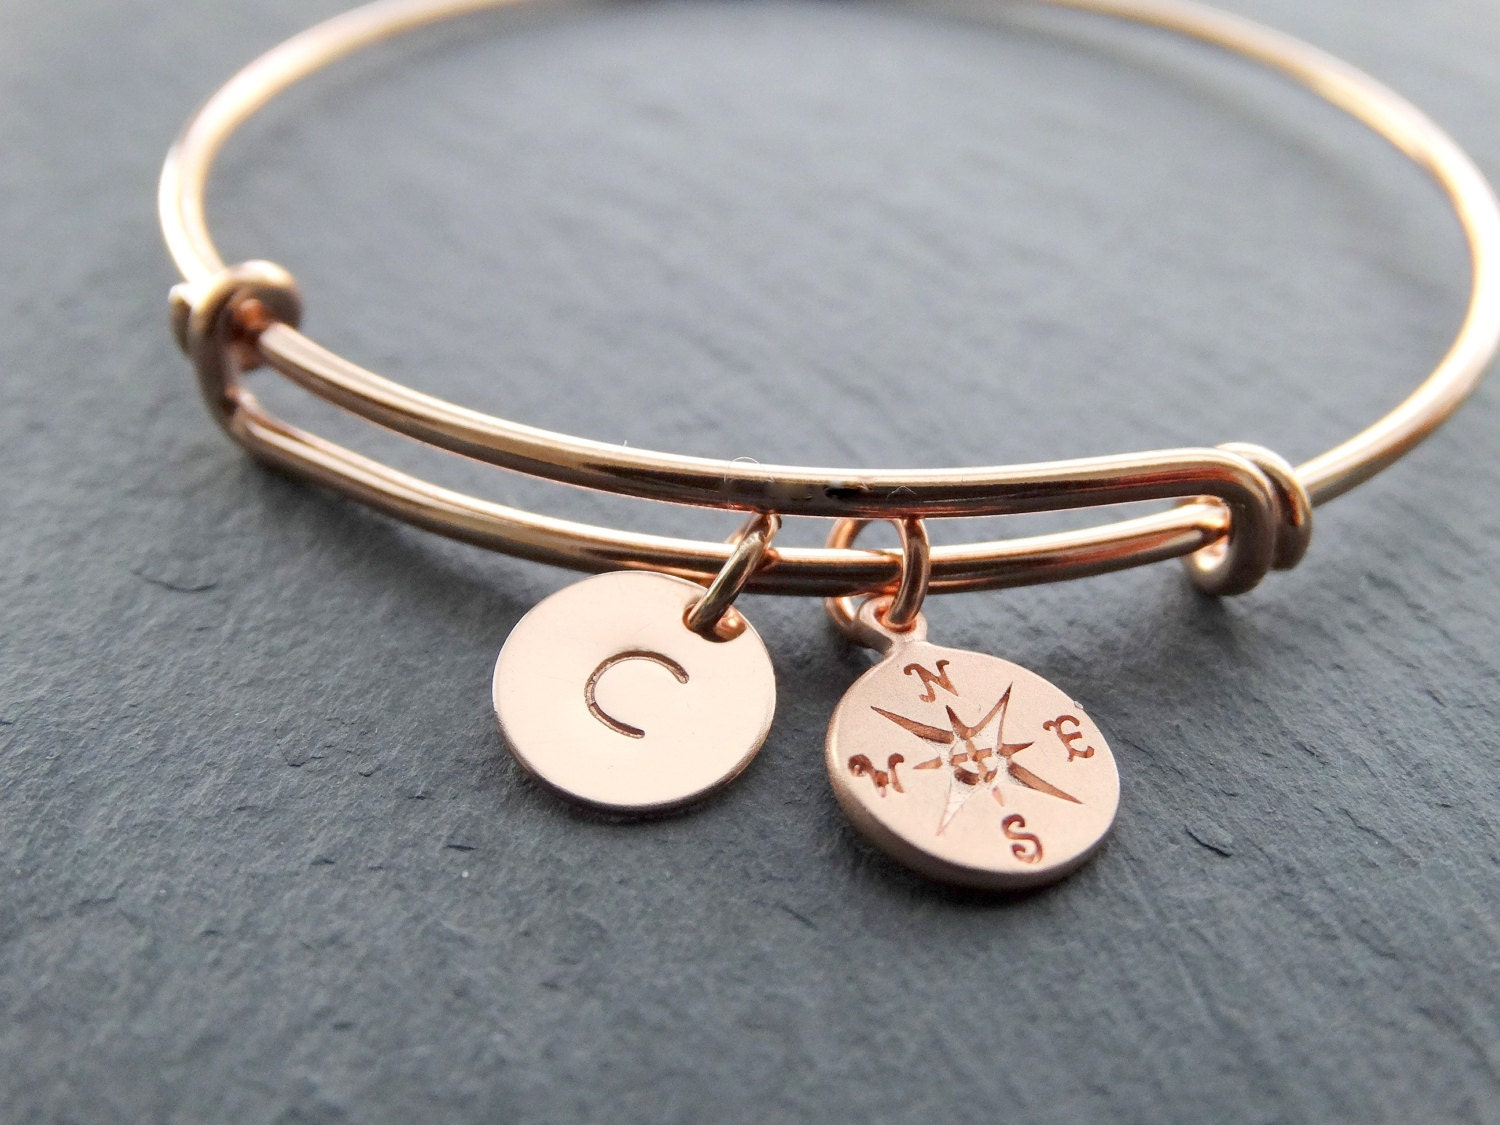 original bracelet compass homeward bound evy designs product mini by evydesigns